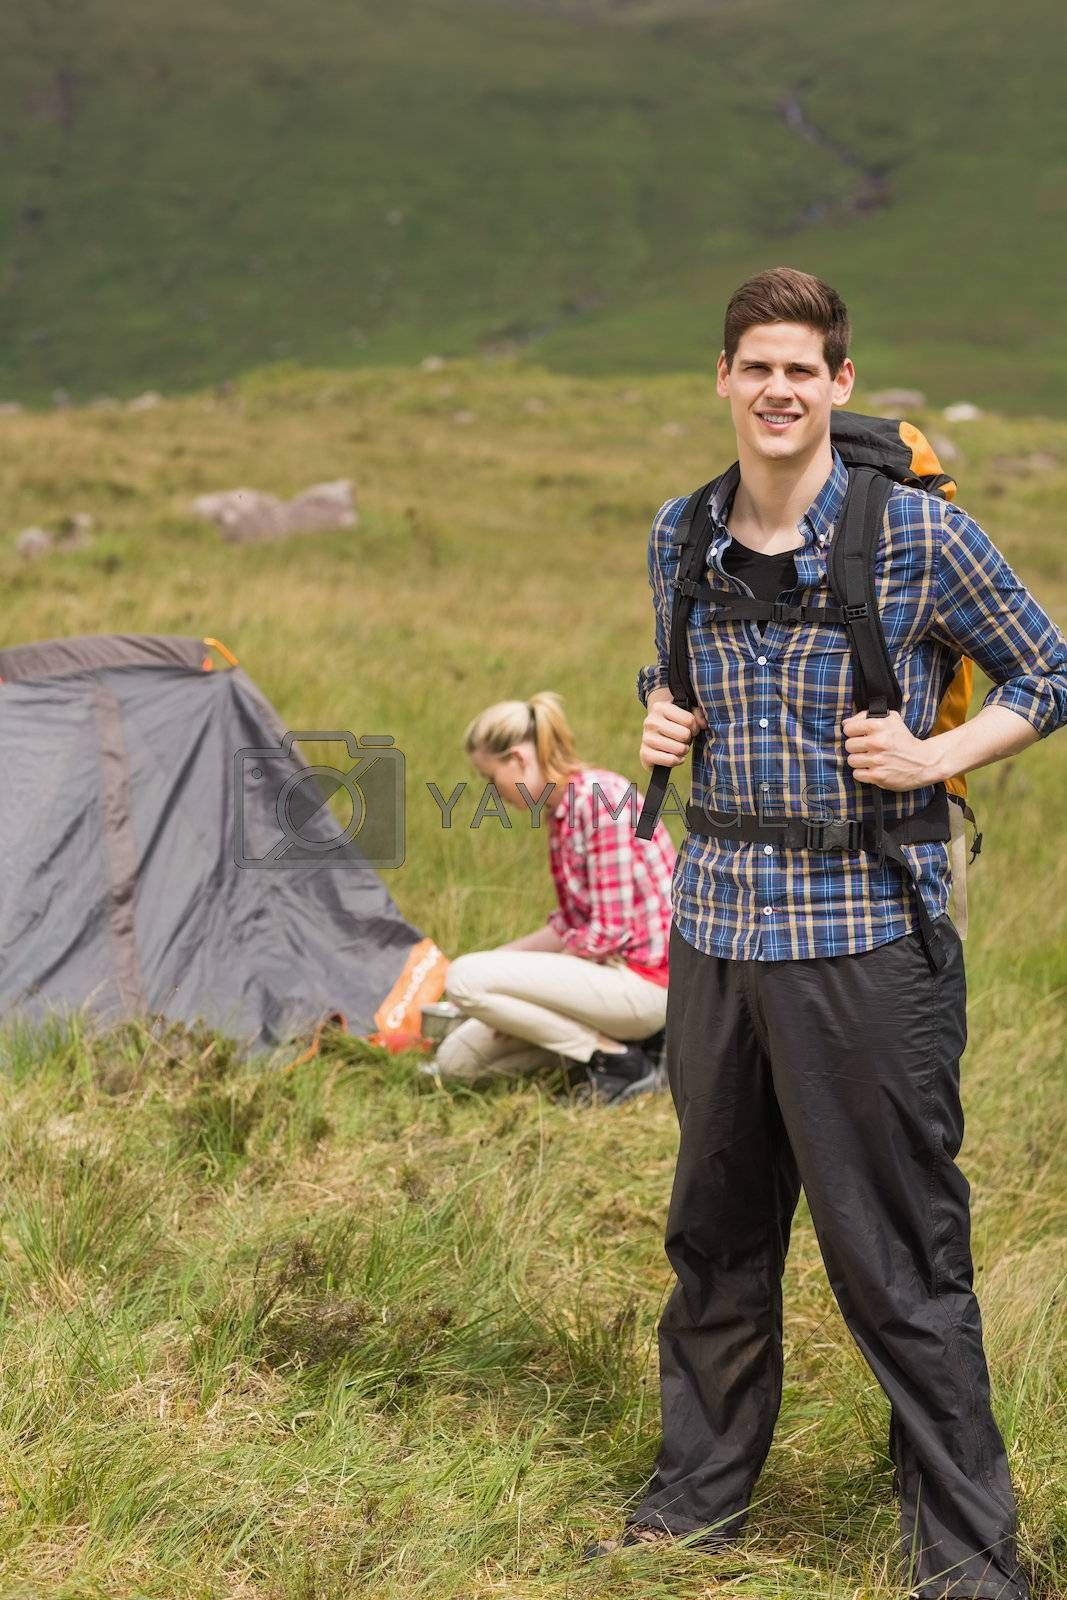 Happy man carrying backpack while girlfriend is pitching tent by Wavebreakmedia